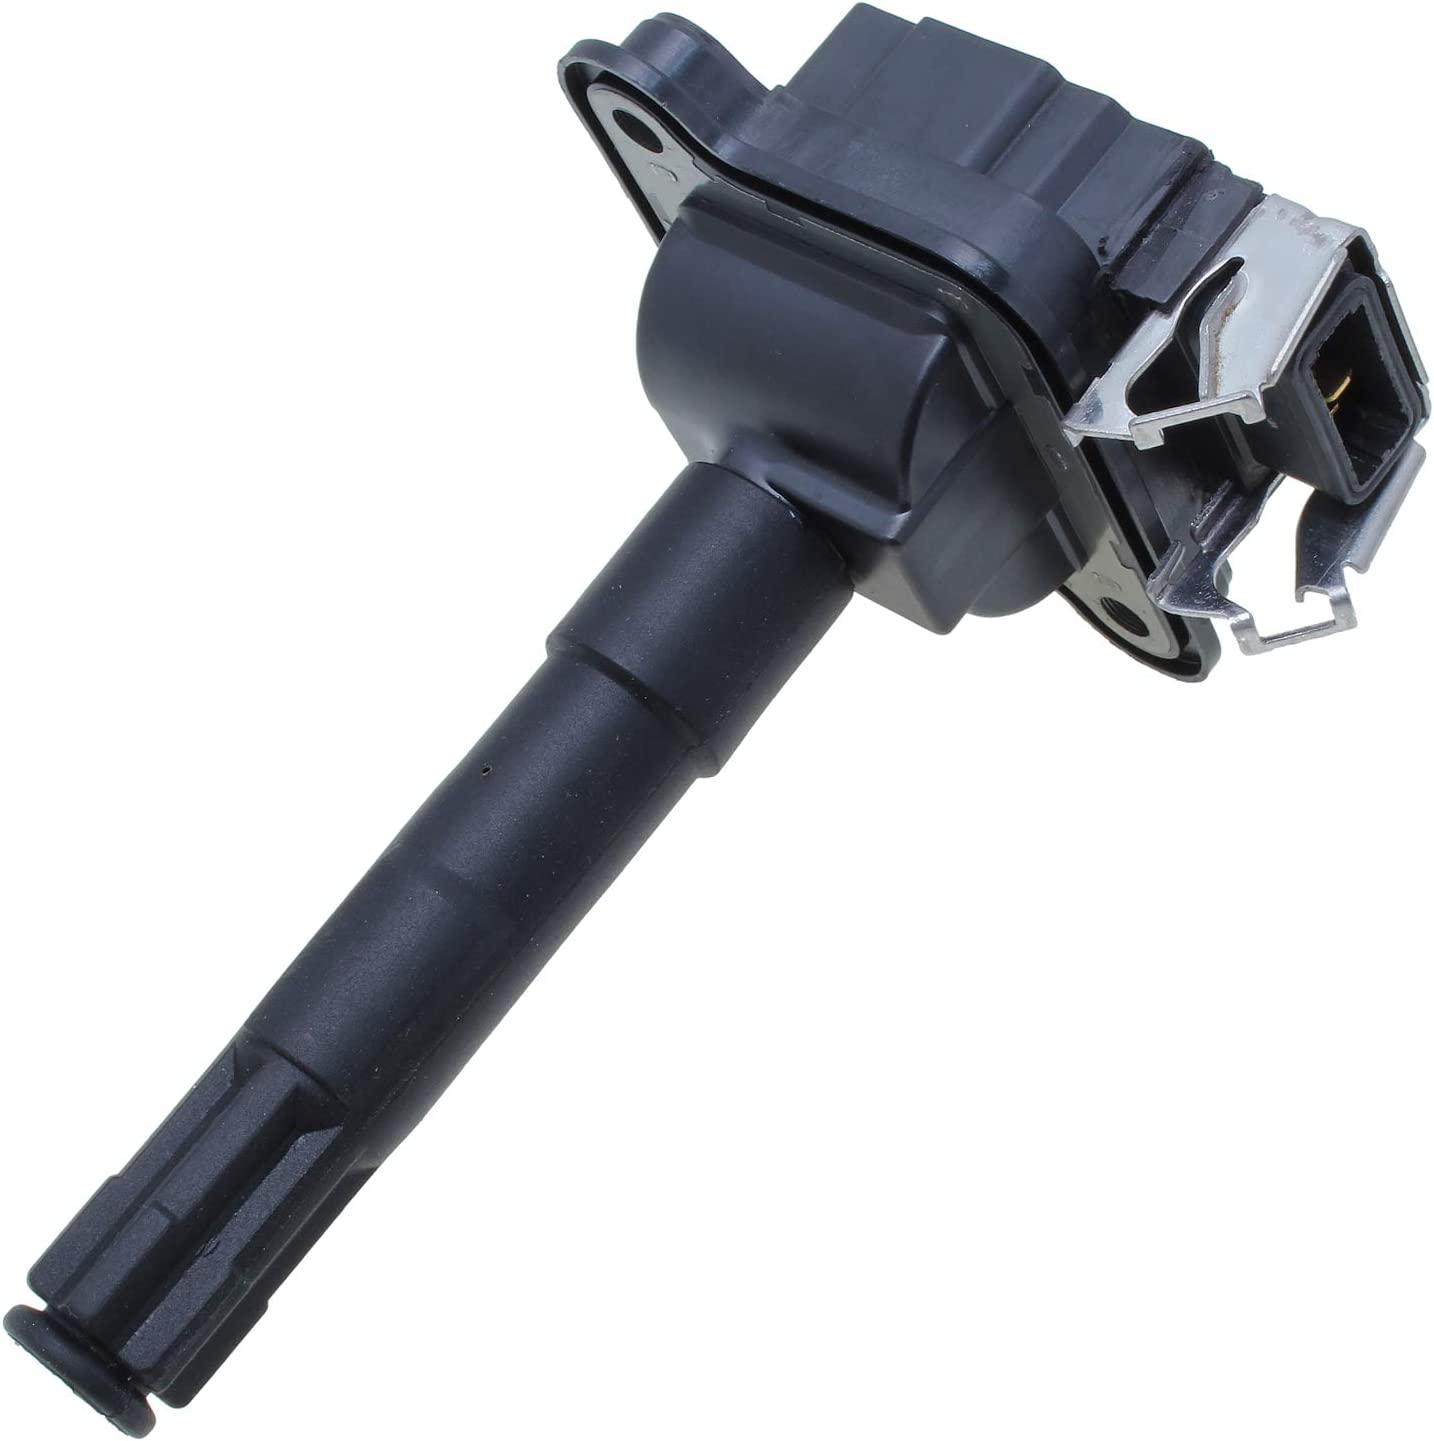 OEM 5174 Ignition Coil